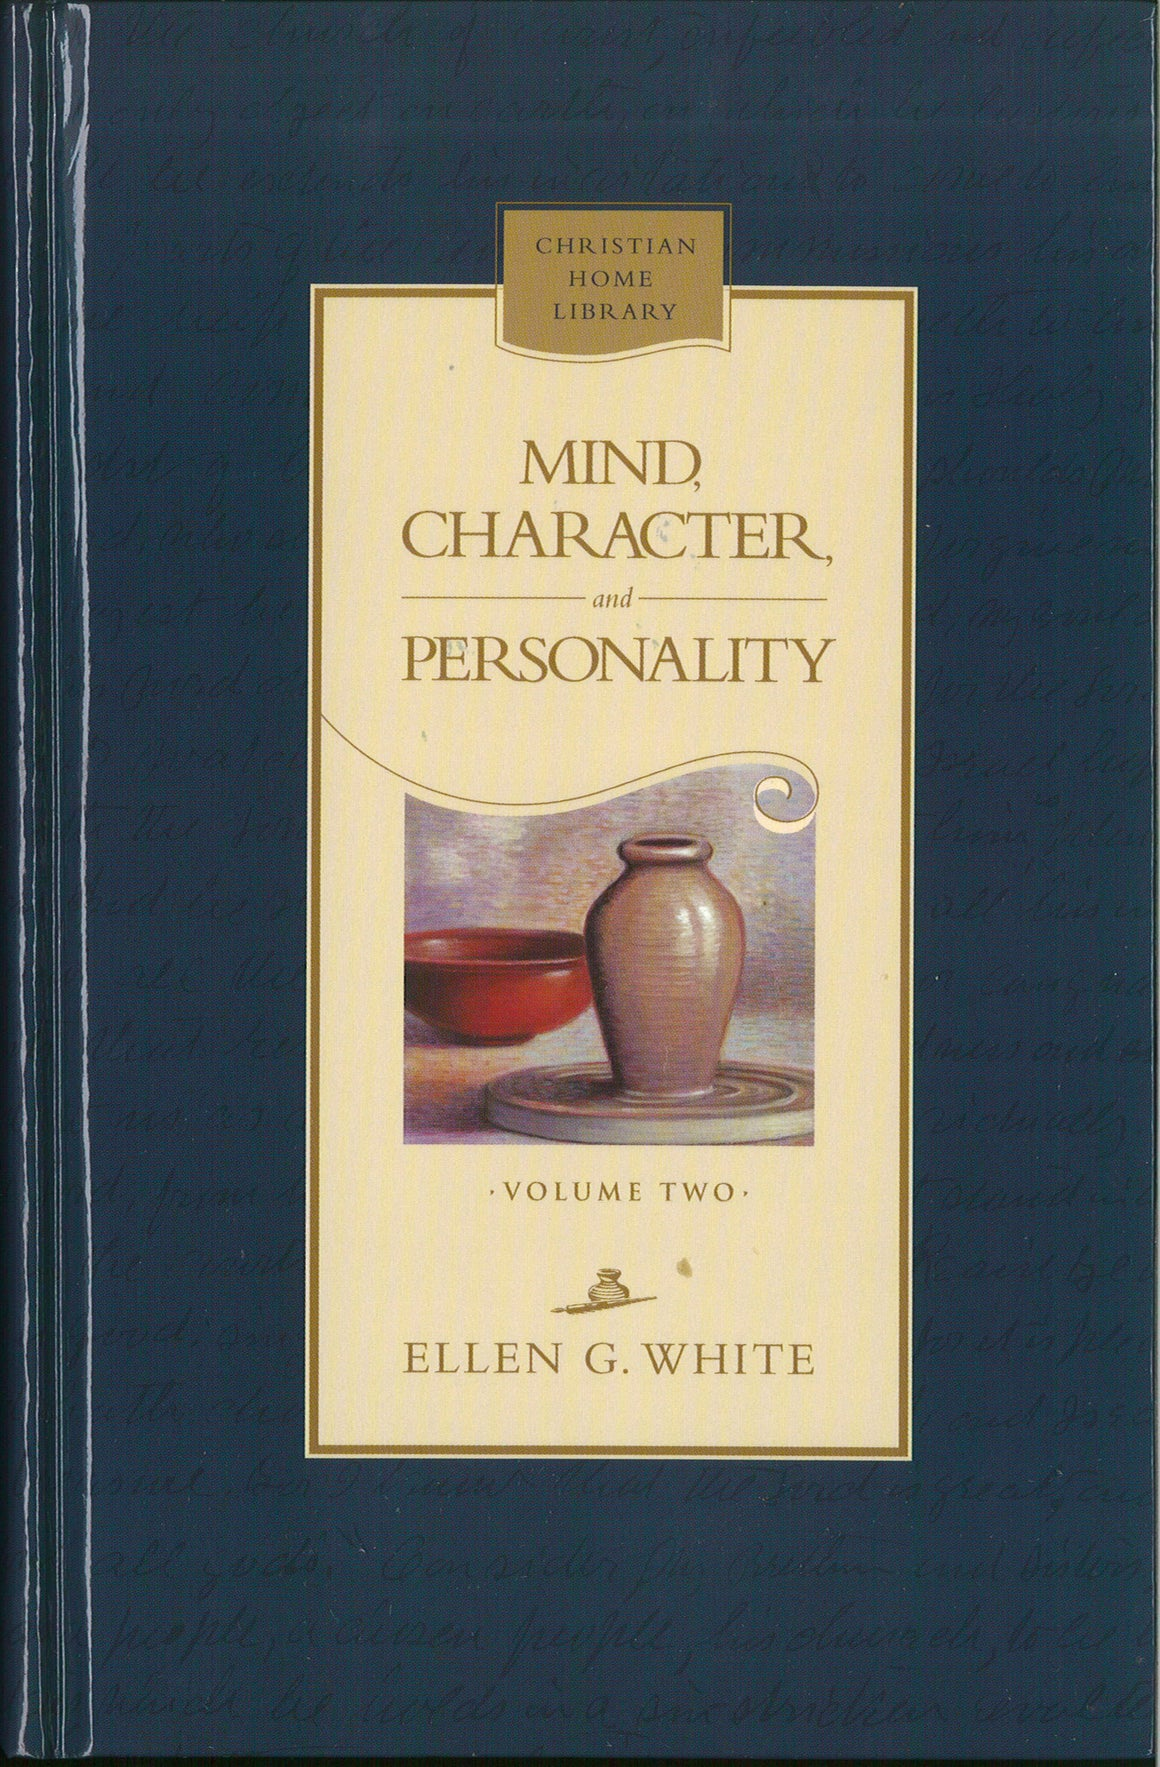 Mind, Character, and Personality, Vol. 2, CHL